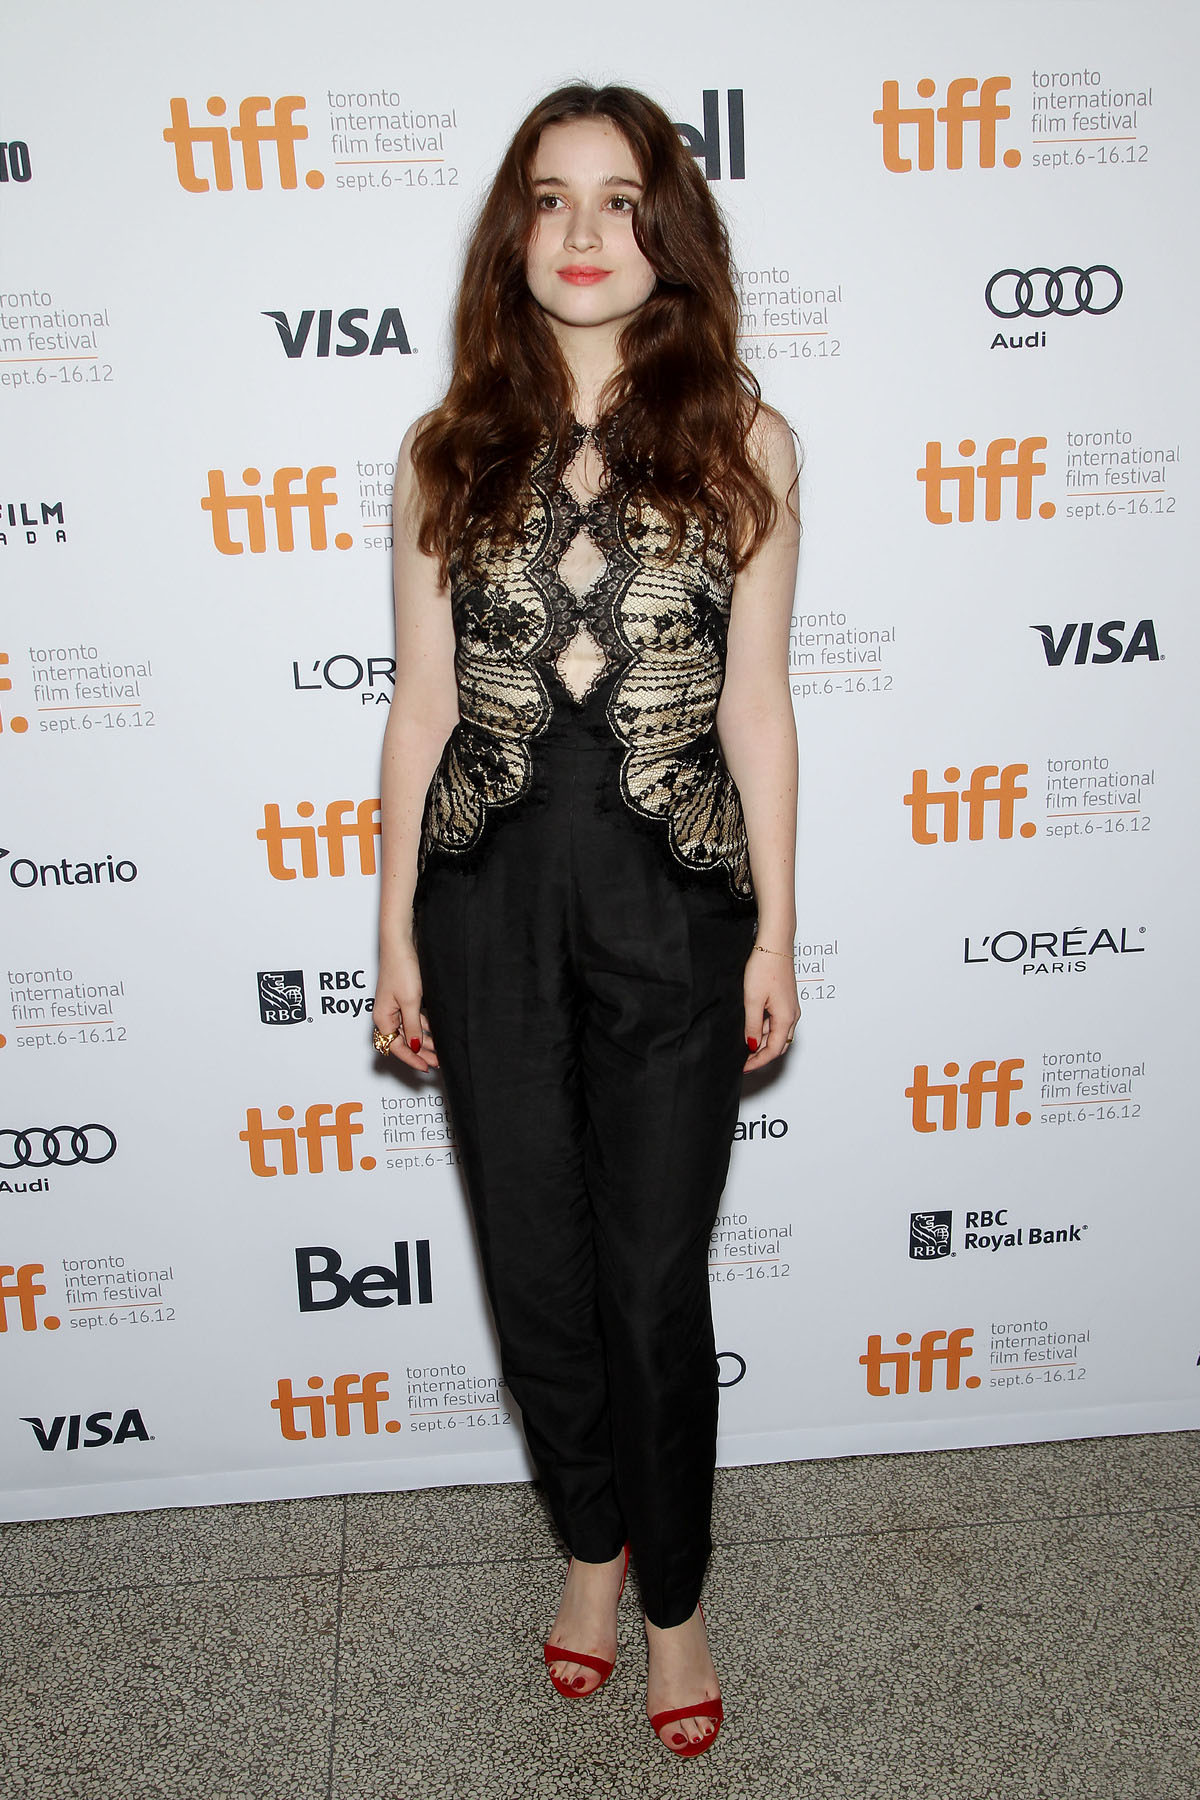 alice englert needle and thread lyricsalice englert tumblr, alice englert tumblr gif, alice englert gif hunt, alice englert and alden ehrenreich, alice englert needle and thread lyrics, alice englert height, alice englert icons, alice englert needle and thread mp3, alice englert weight and height, alice englert photo gallery, alice englert gif, alice englert instagram, alice englert listal, alice englert vk, alice englert insta, alice englert needle and thread, alice englert gallery